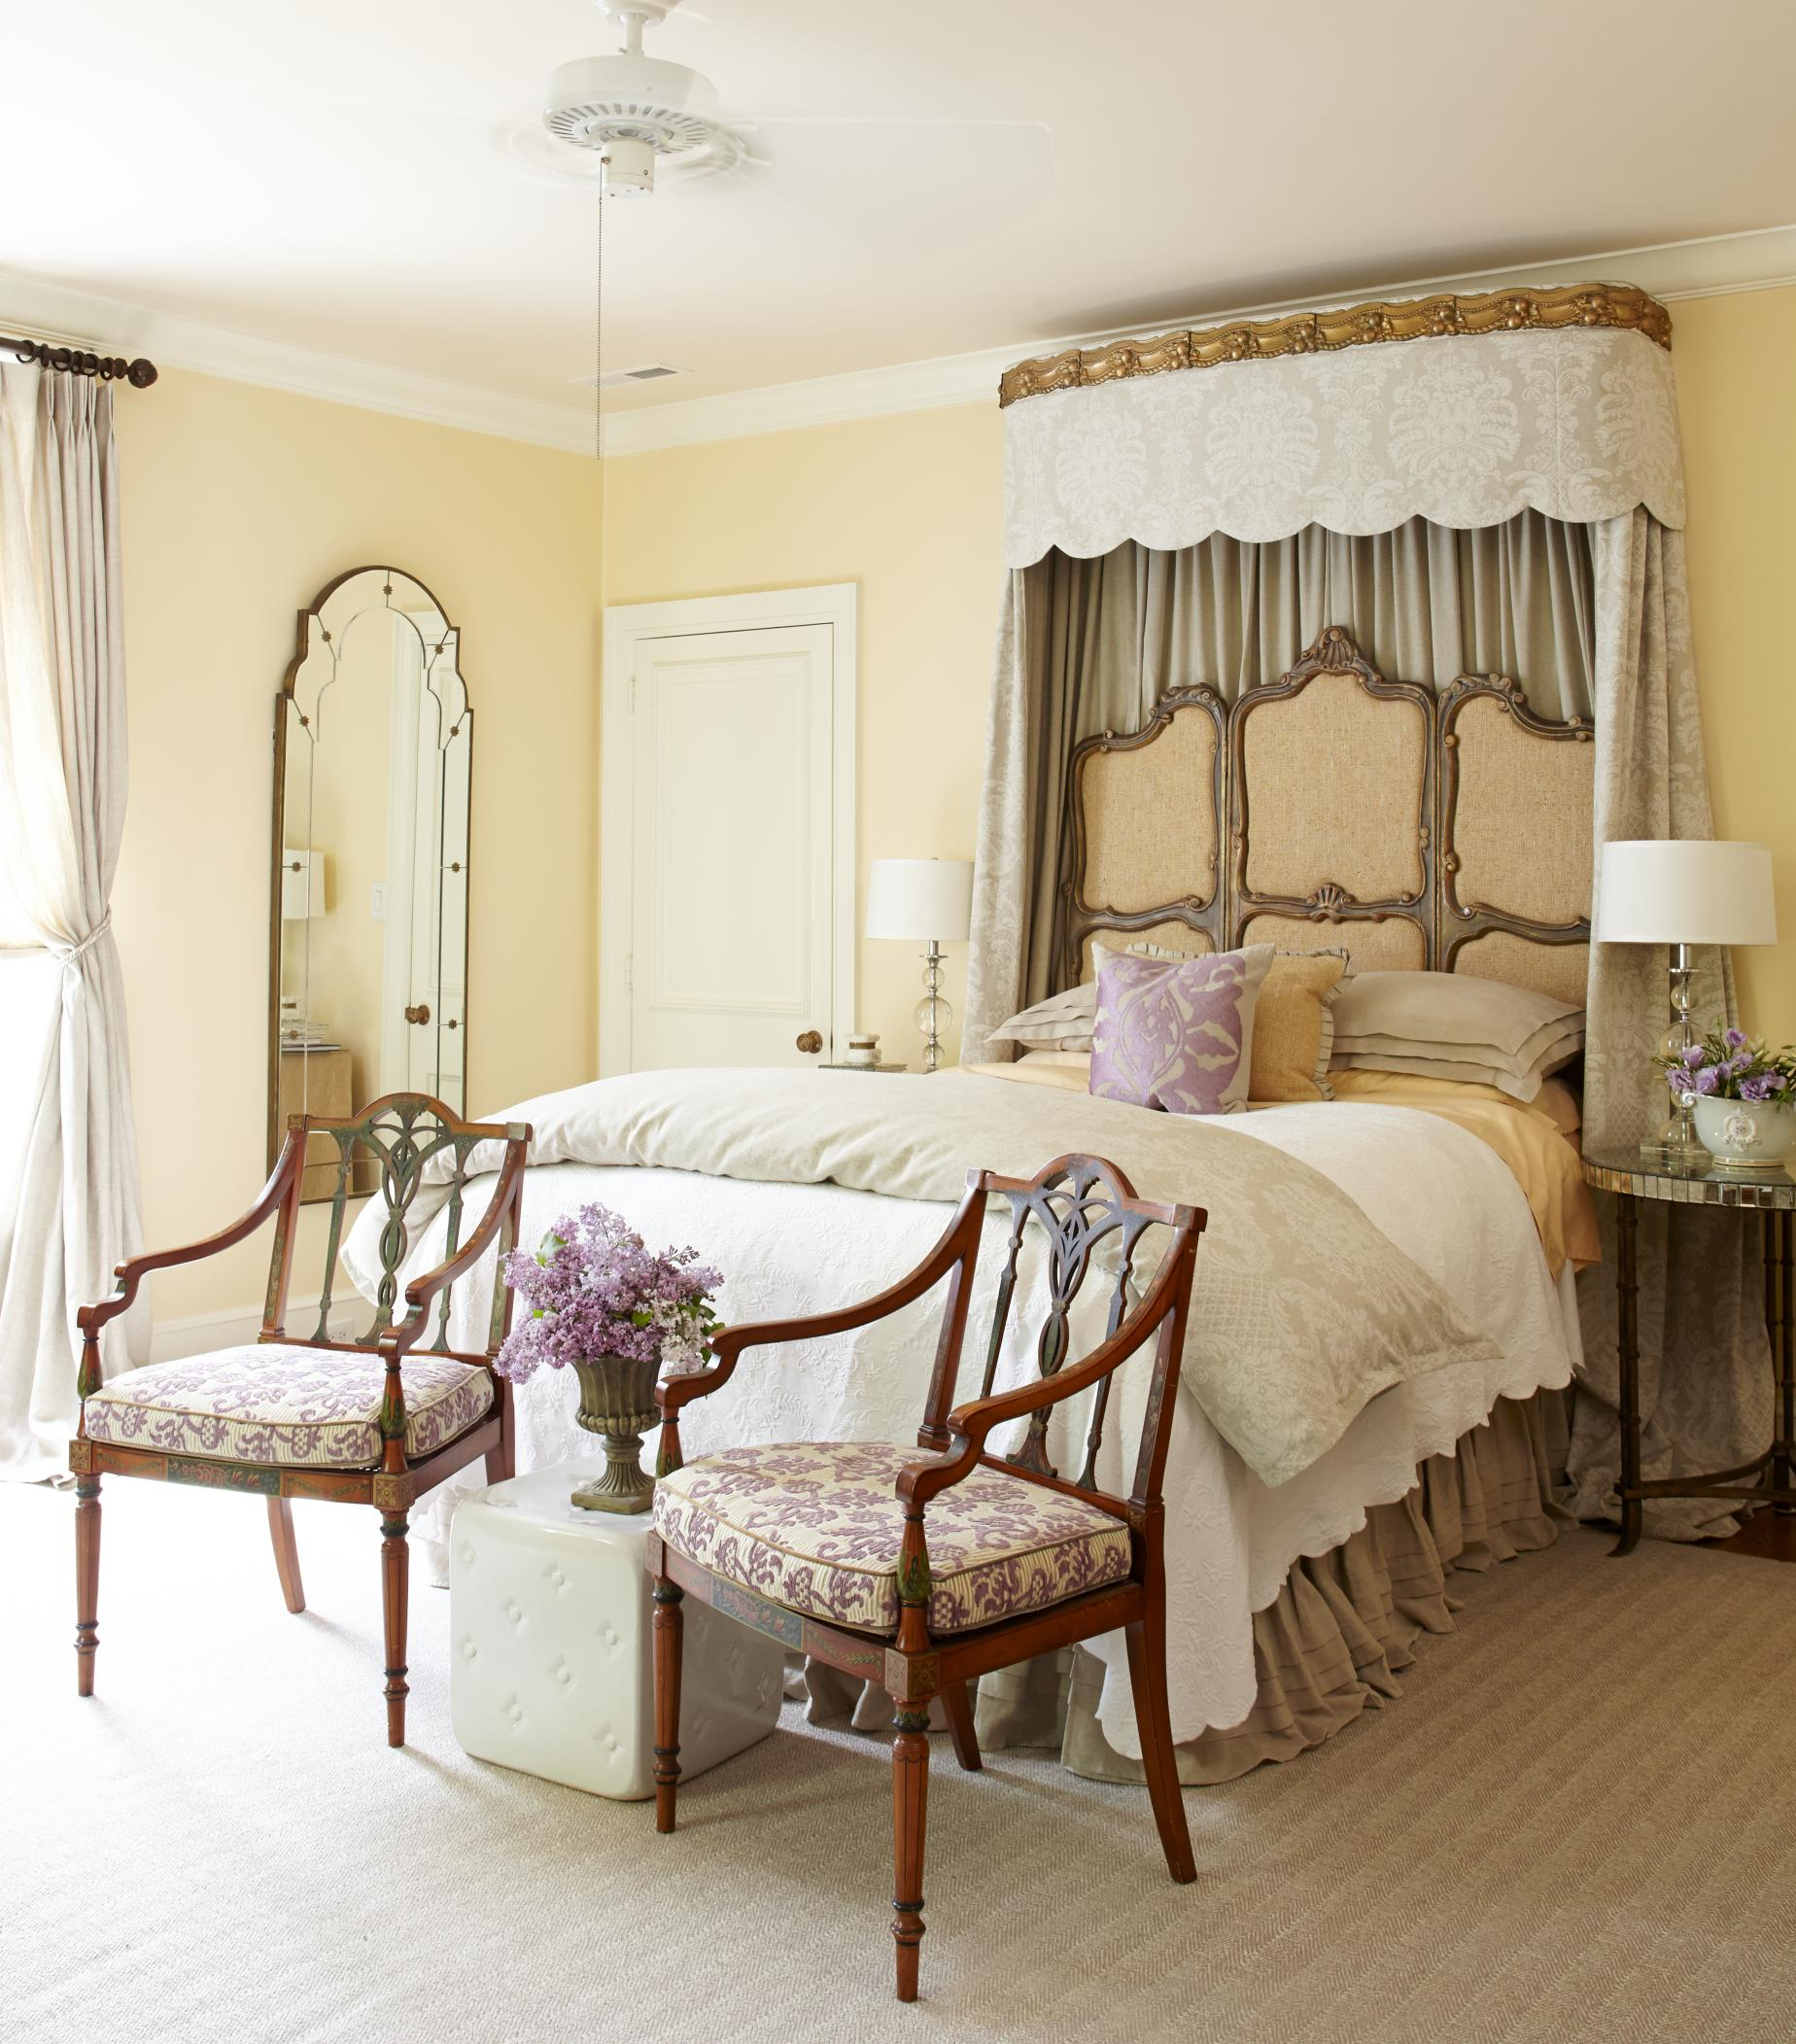 Traditional Bedroom Pictures: 12 Romantic Bedrooms